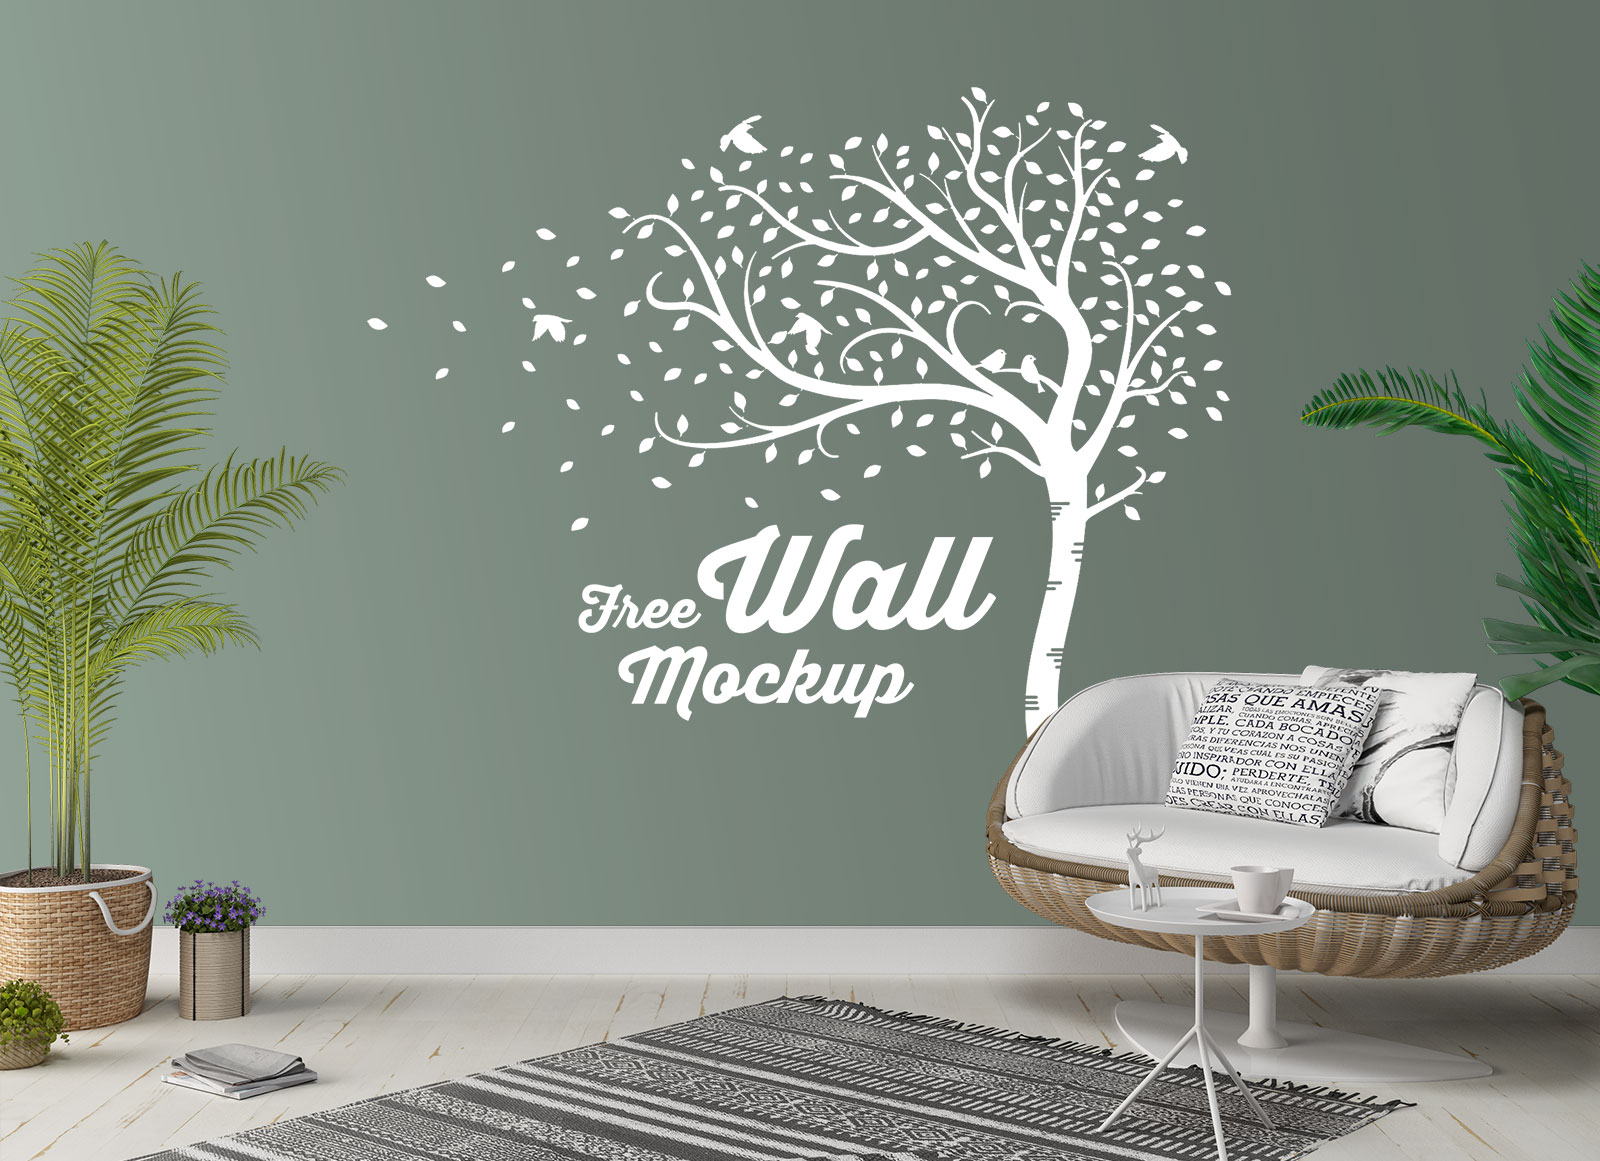 Free-Wall-Mockup-PSD-For-Decals,-Stickers-&-Murals-2-2